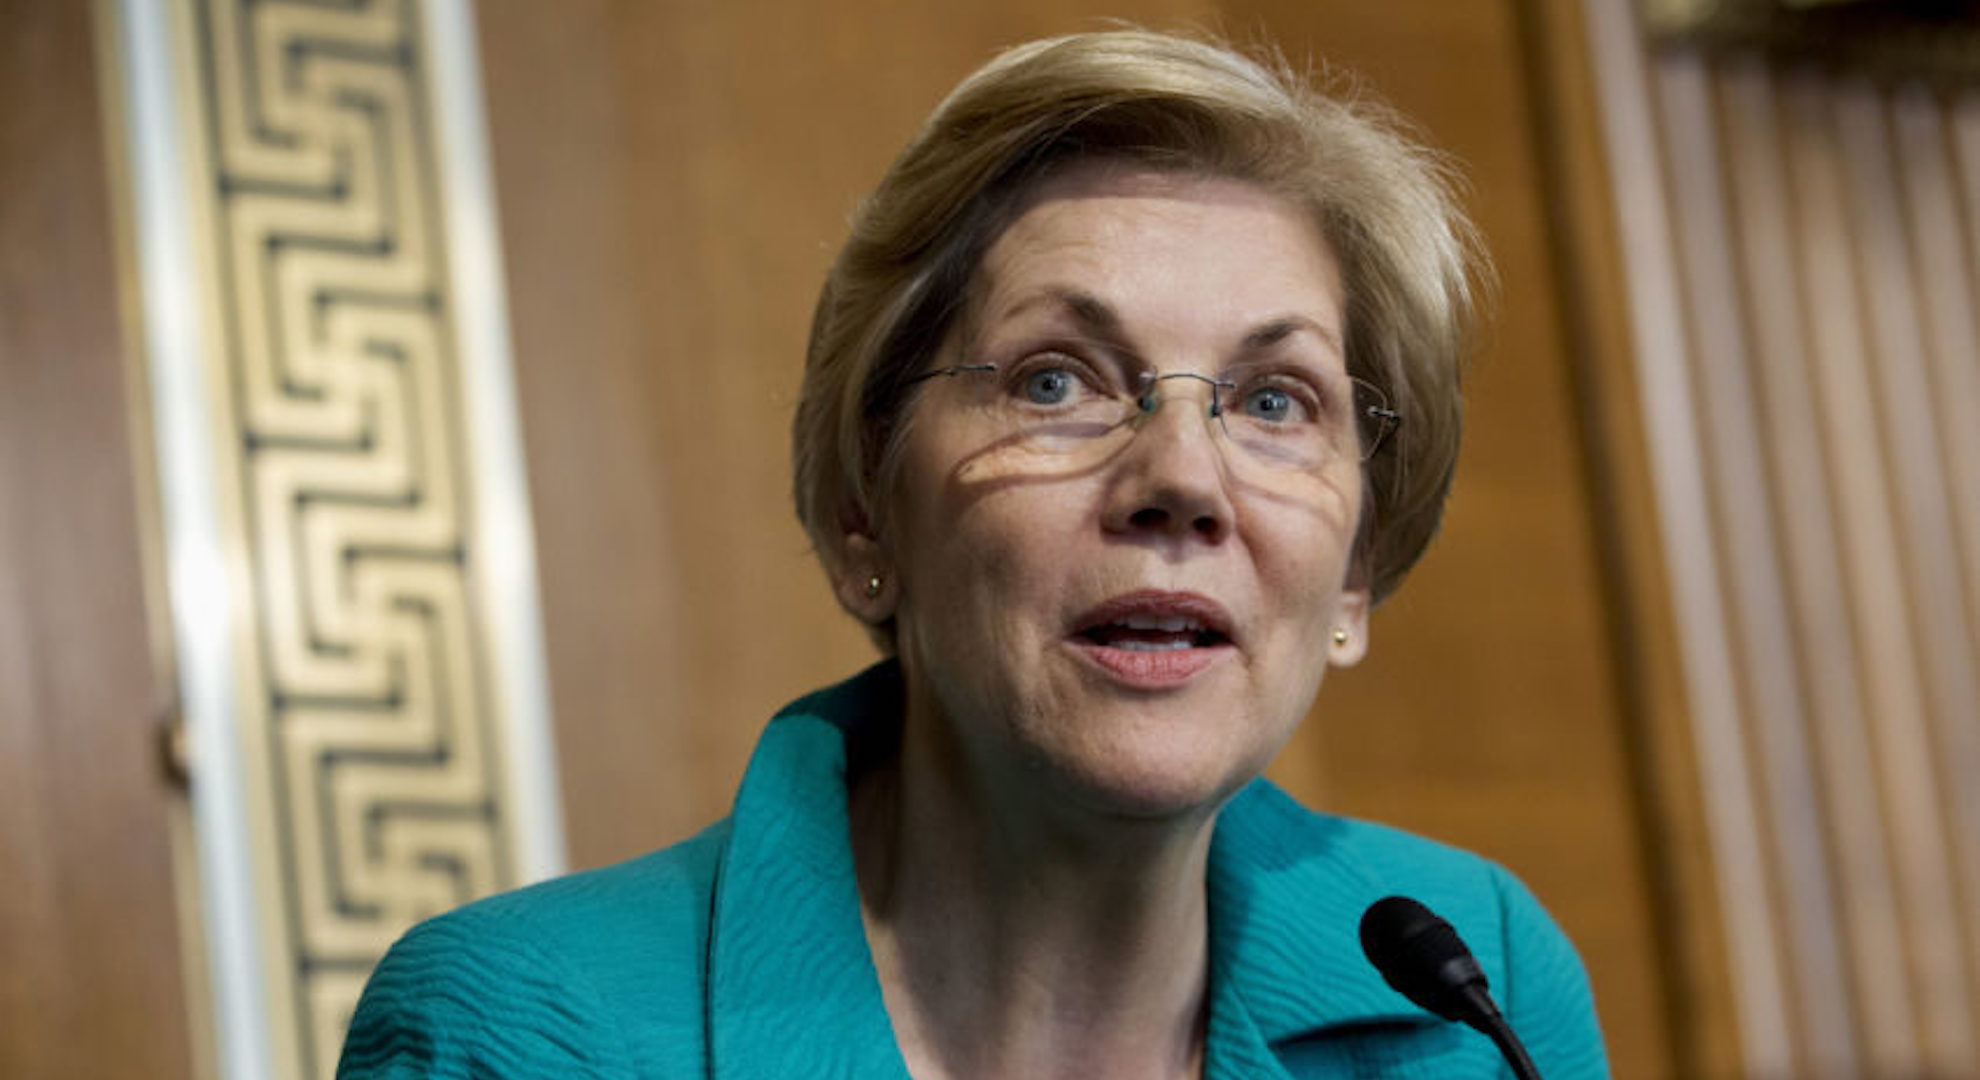 AP Photo: Elizabeth Warren